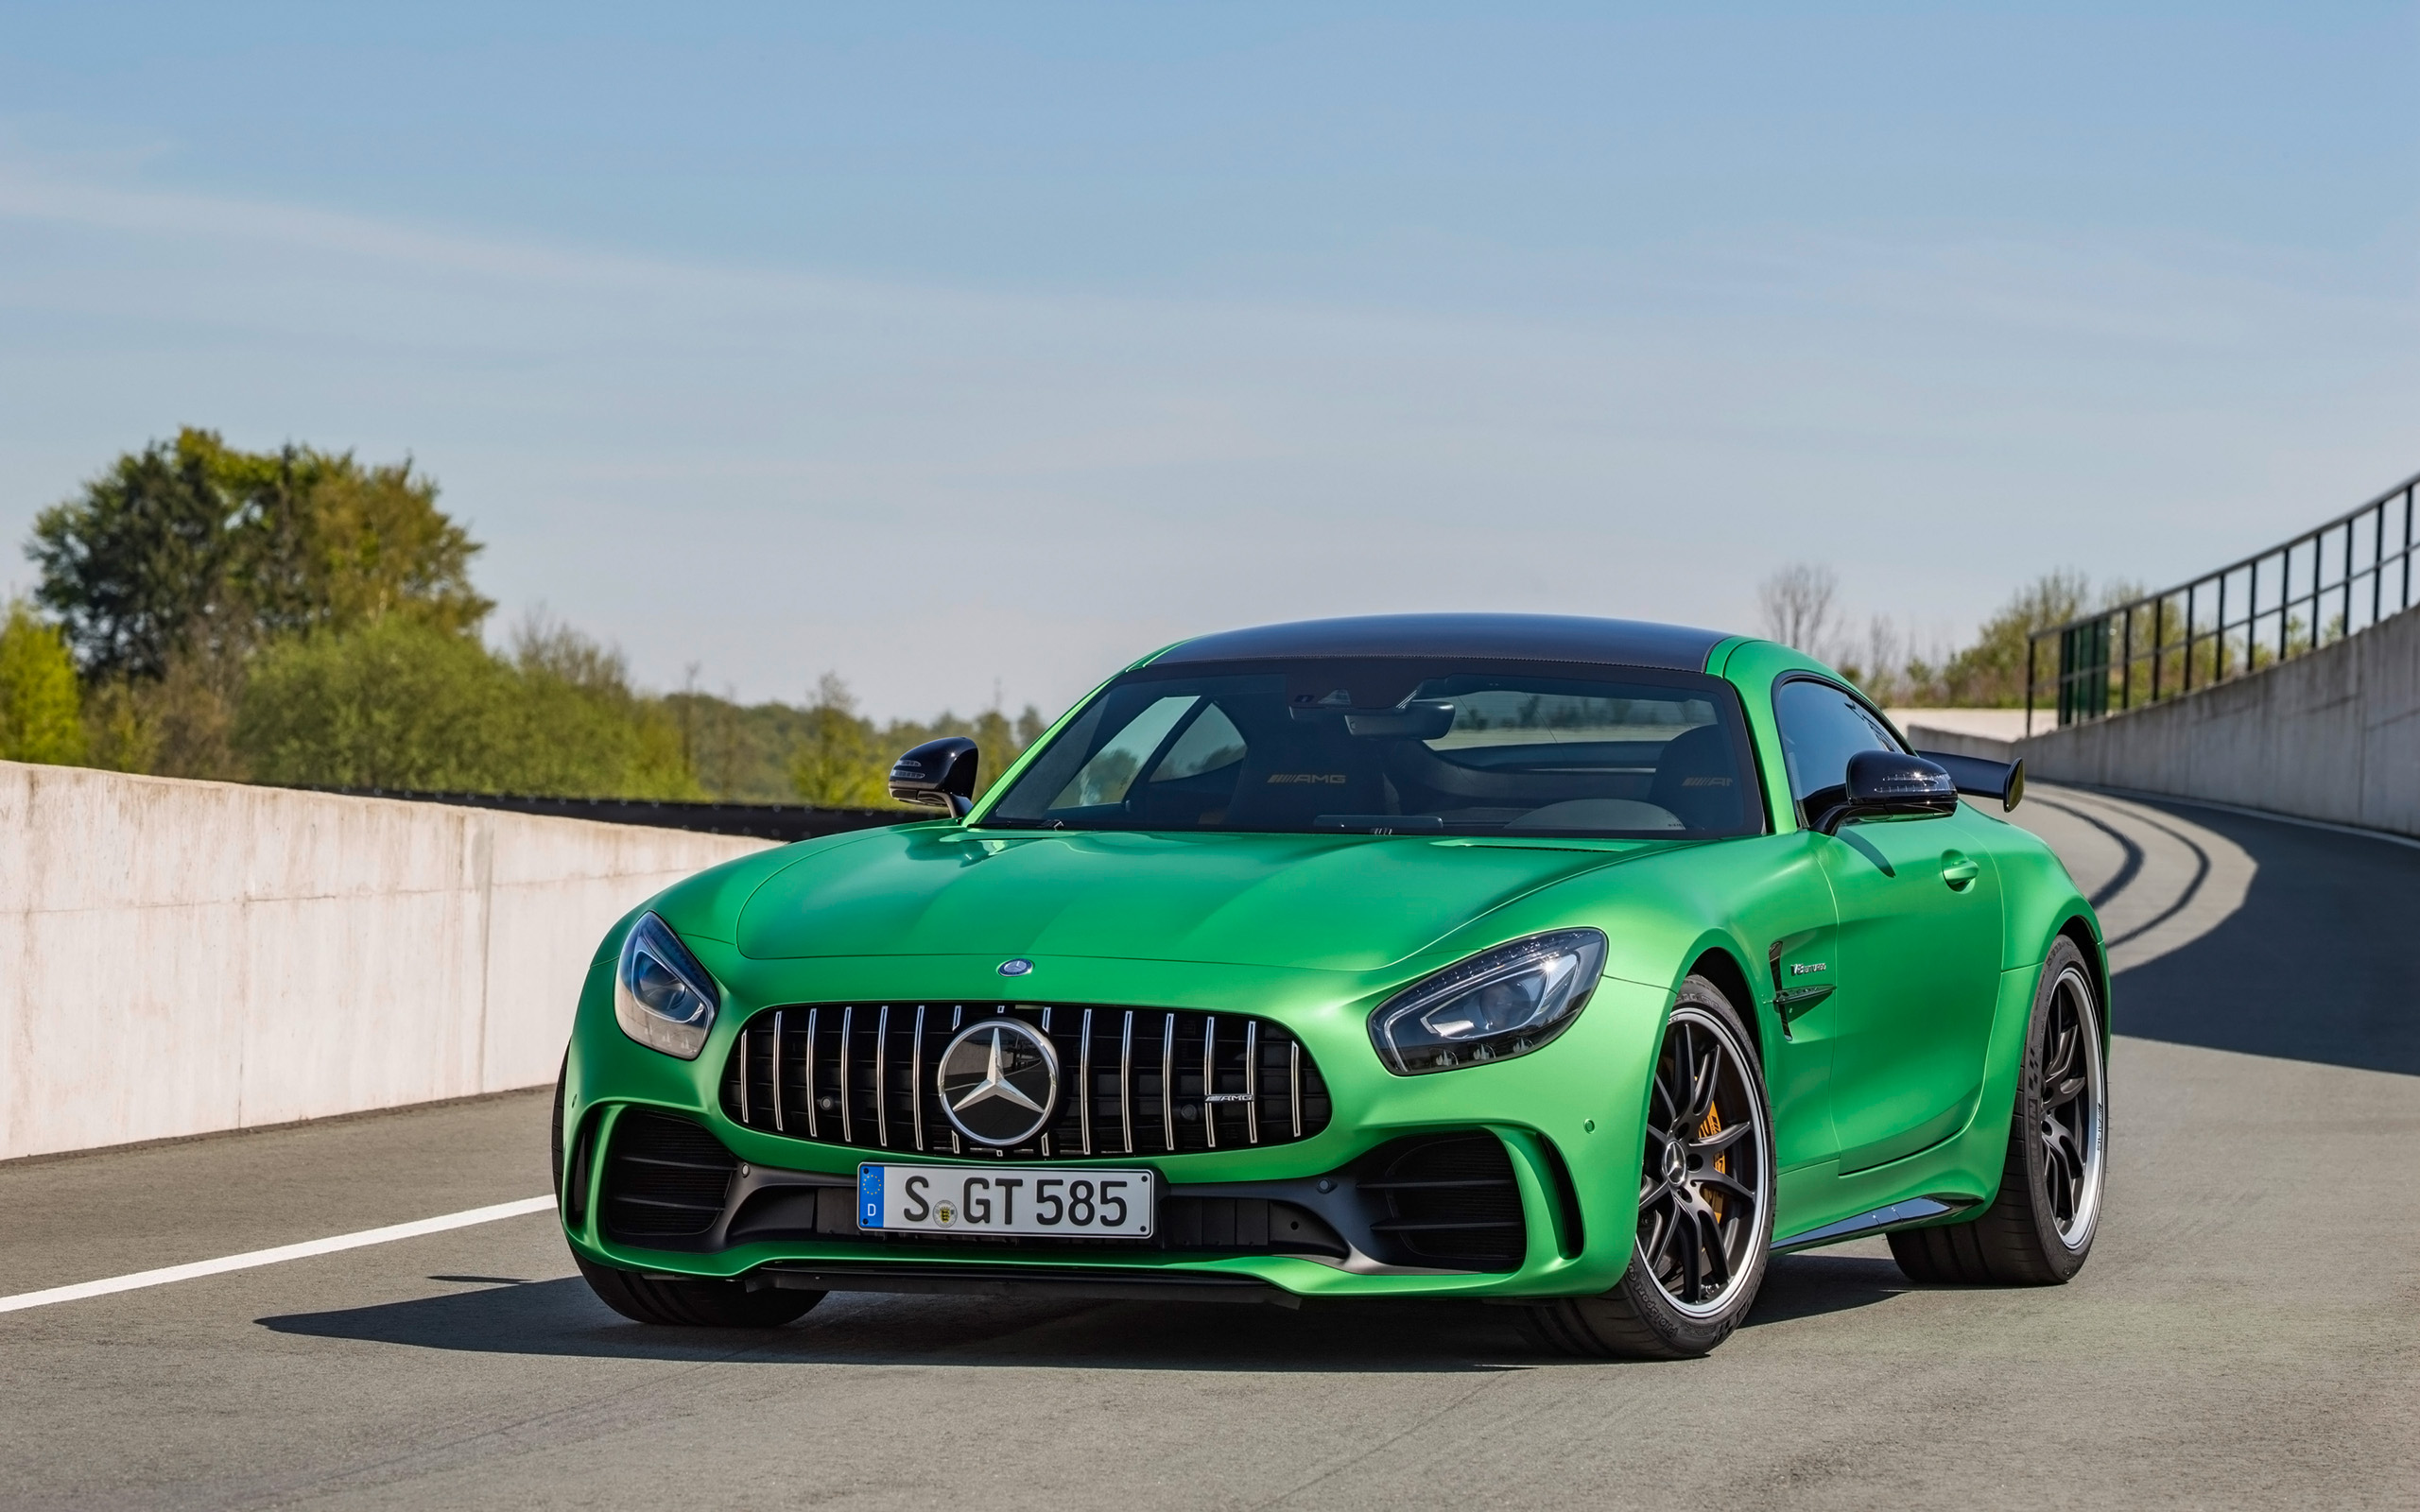 2017 Mercedes Amg Gt R 4 Wallpaper Hd Car Wallpapers Id 6755